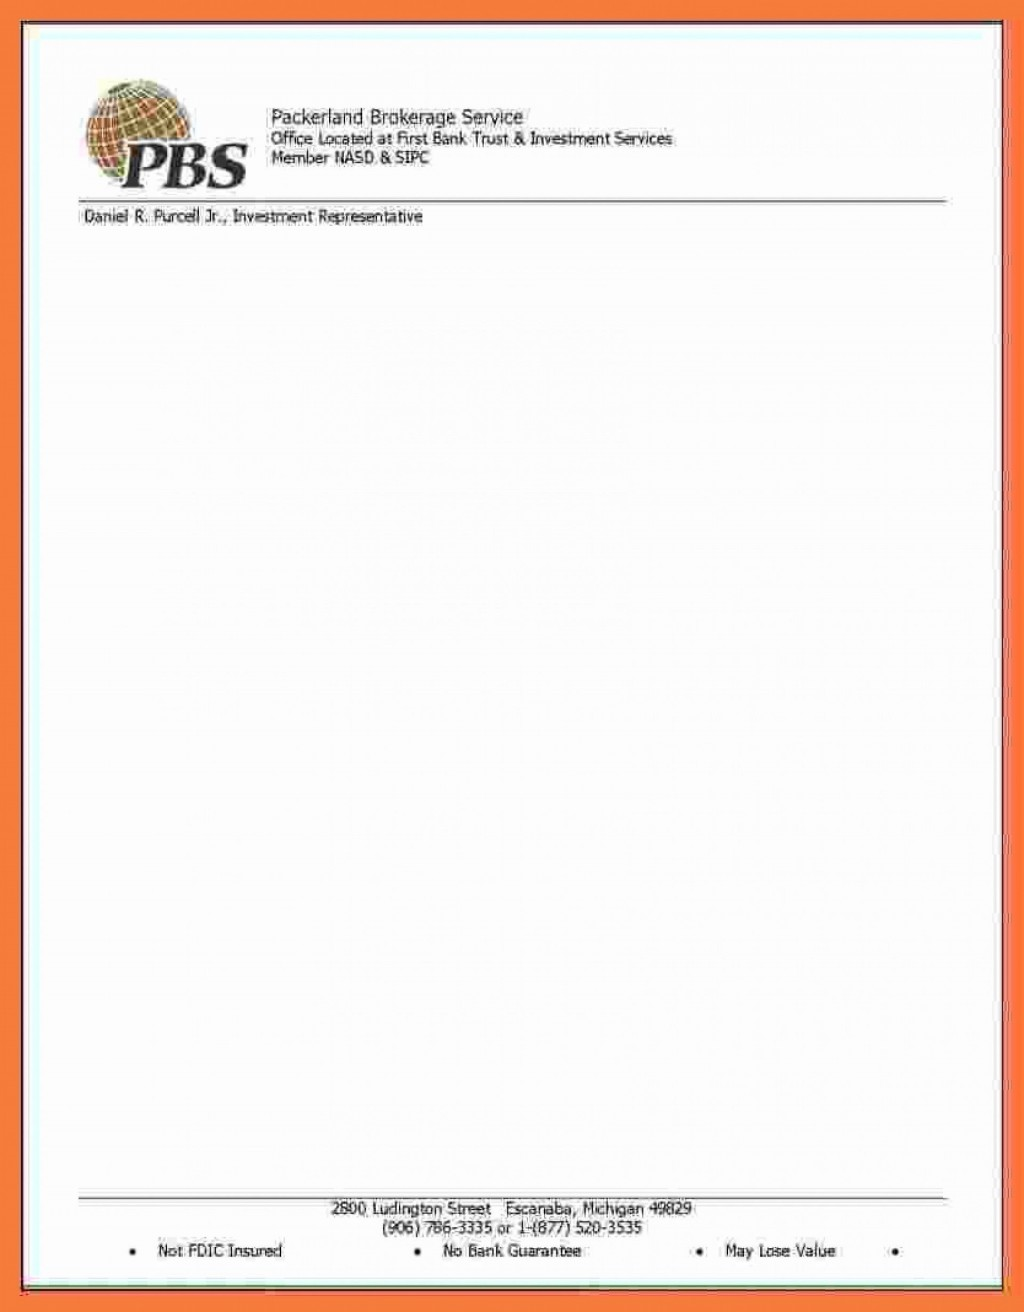 002 Shocking Letterhead Example Free Download High Resolution  Advocate Format Hospital In Word PdfLarge